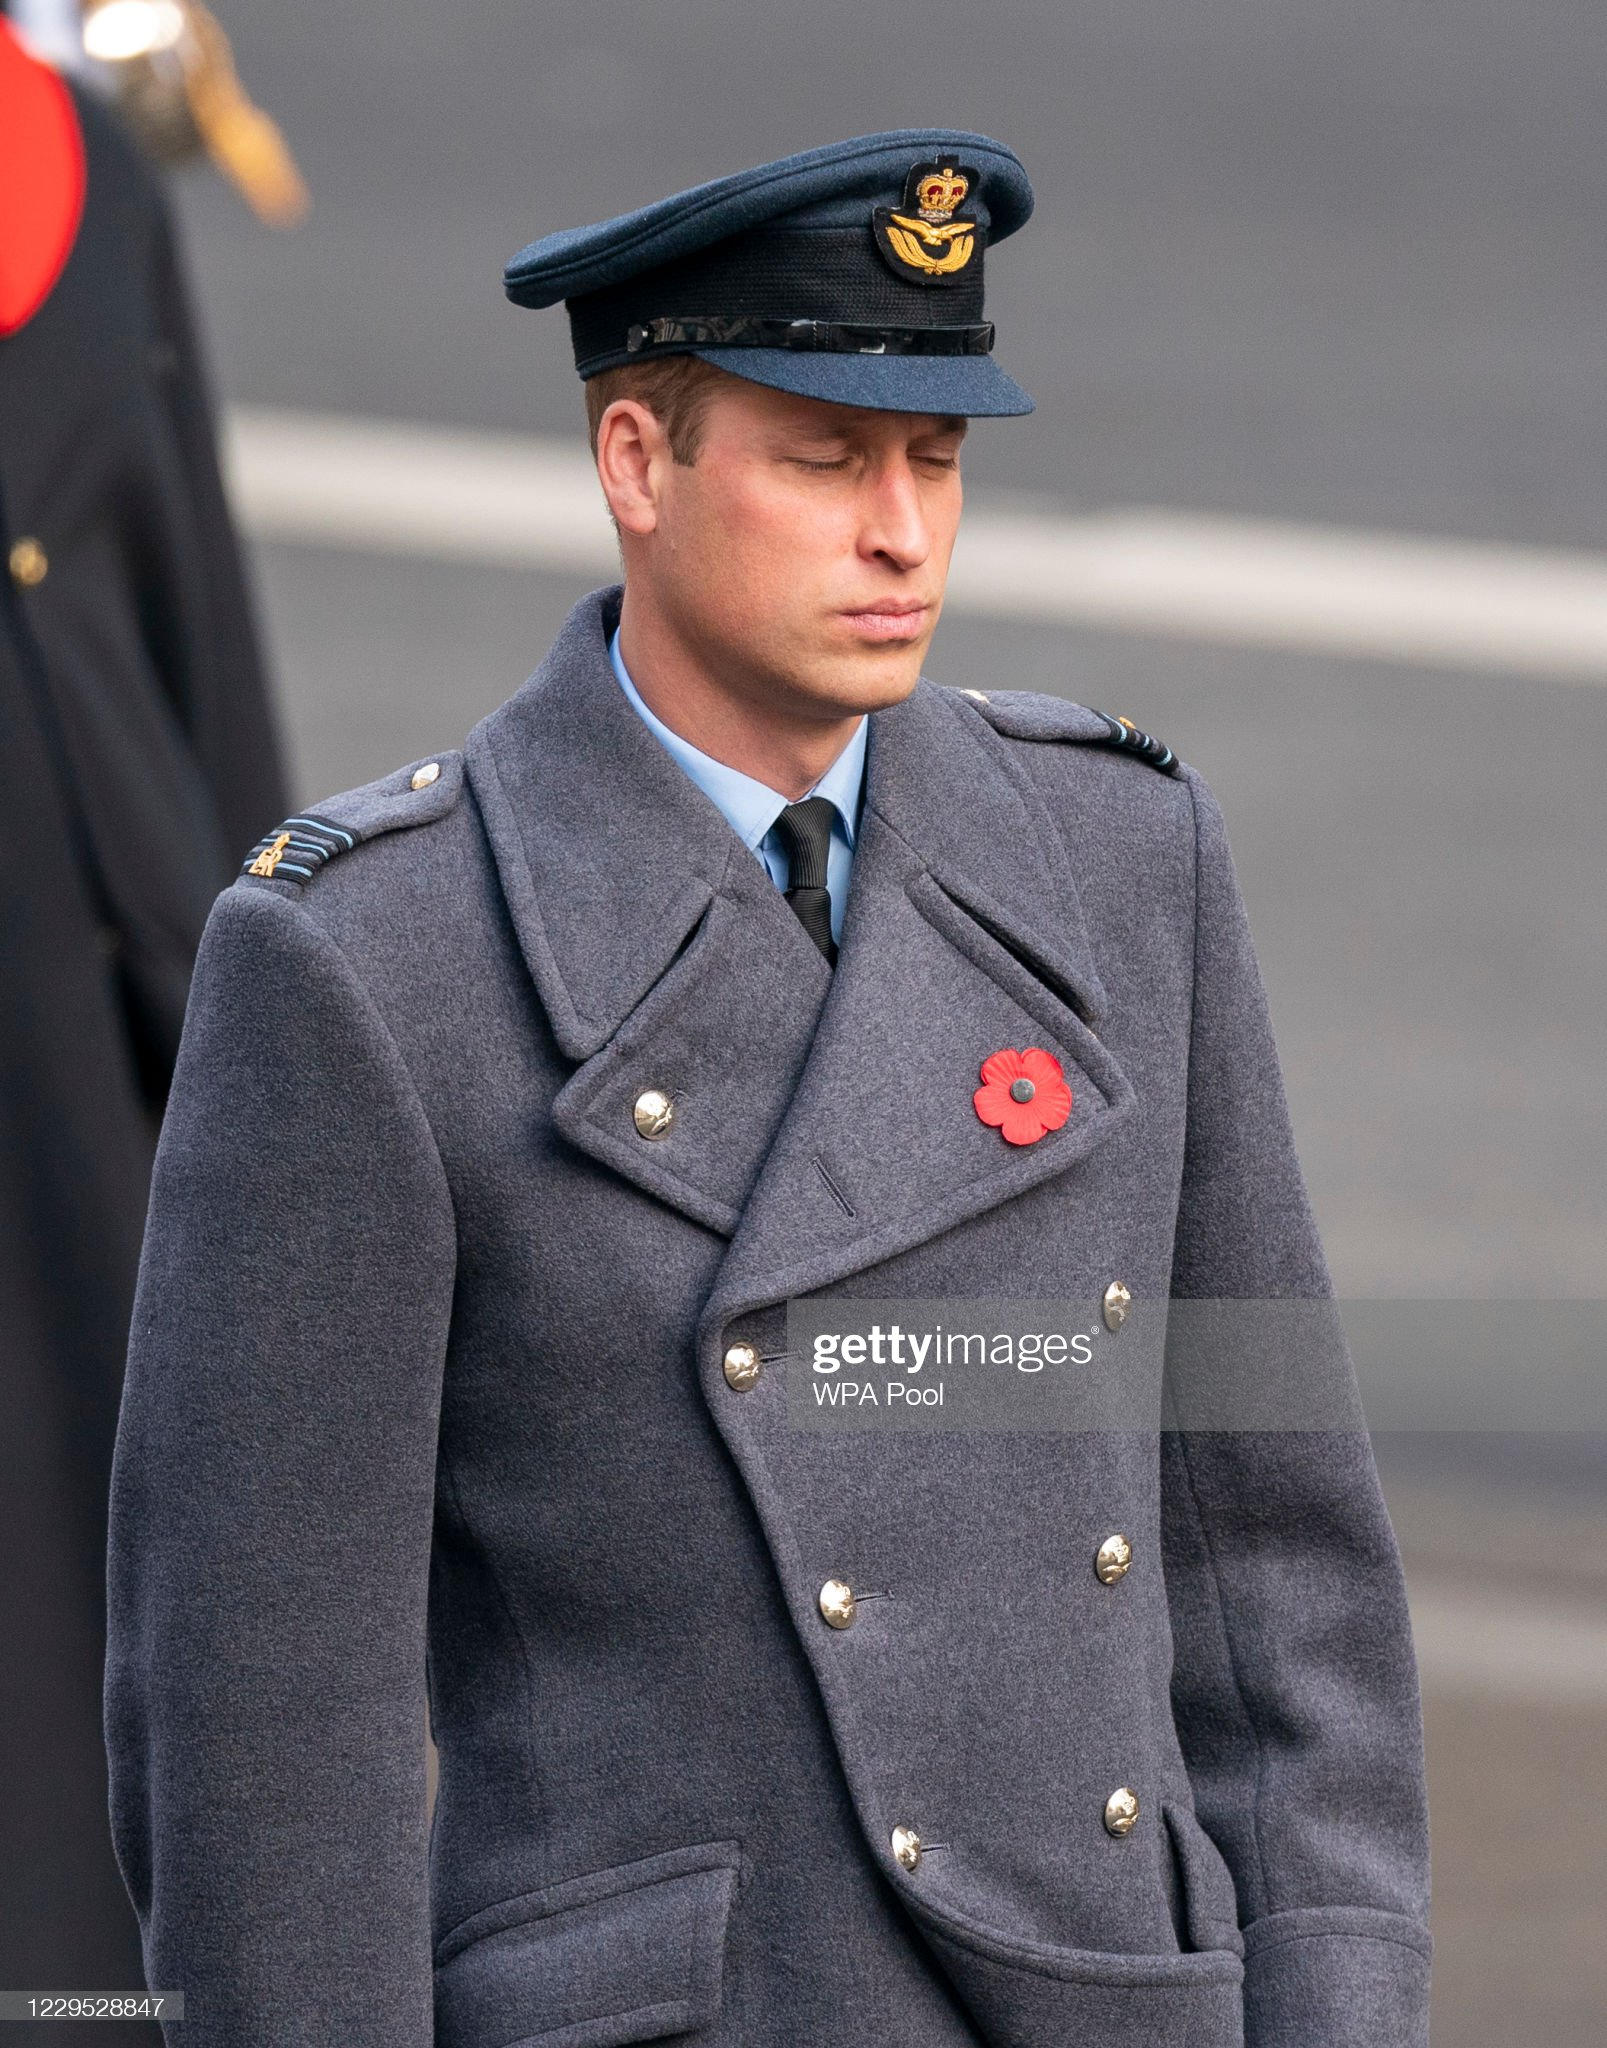 https://media.gettyimages.com/photos/prince-william-duke-of-cambridge-attends-the-national-service-of-at-picture-id1229528847?s=2048x2048